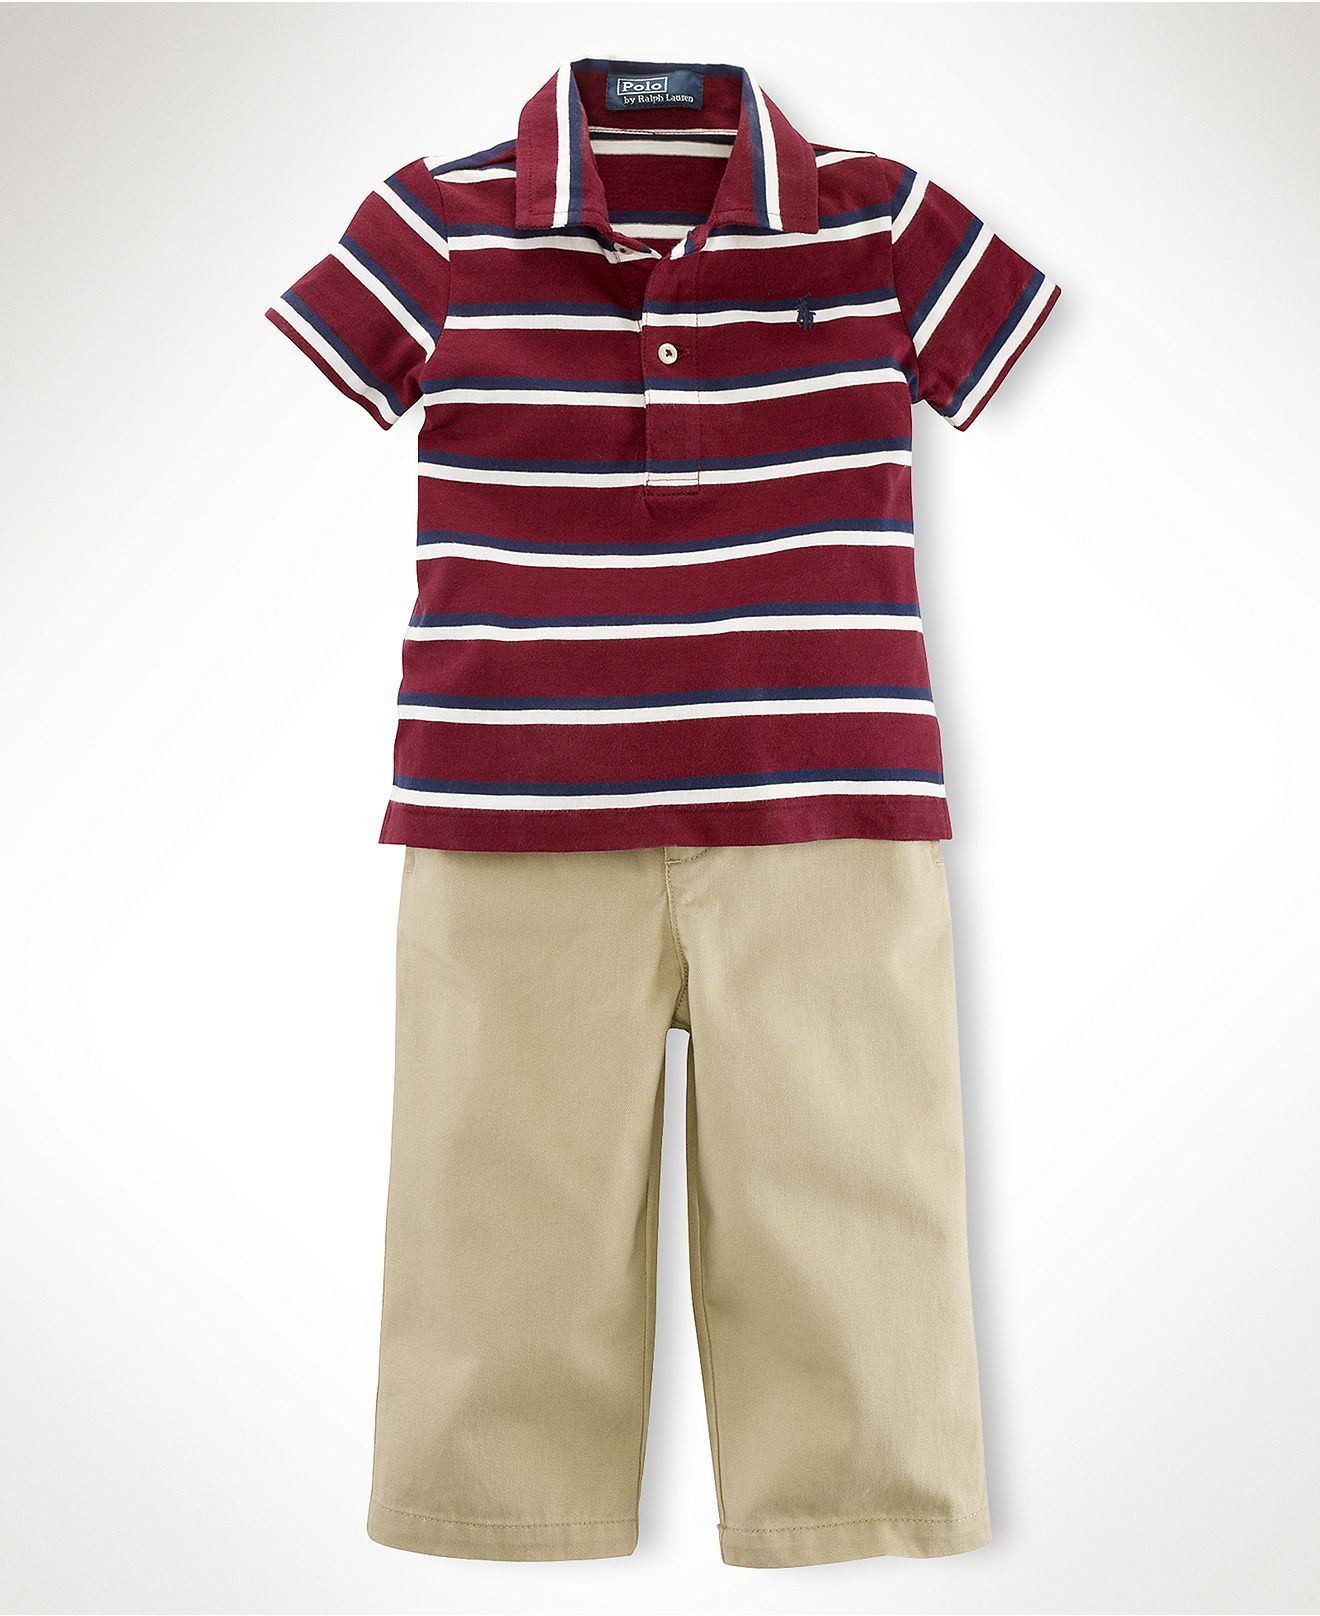 c2e71480 Ralph Lauren Baby Set, Baby Boys Striped Polo and Chino Pants - Kids ...